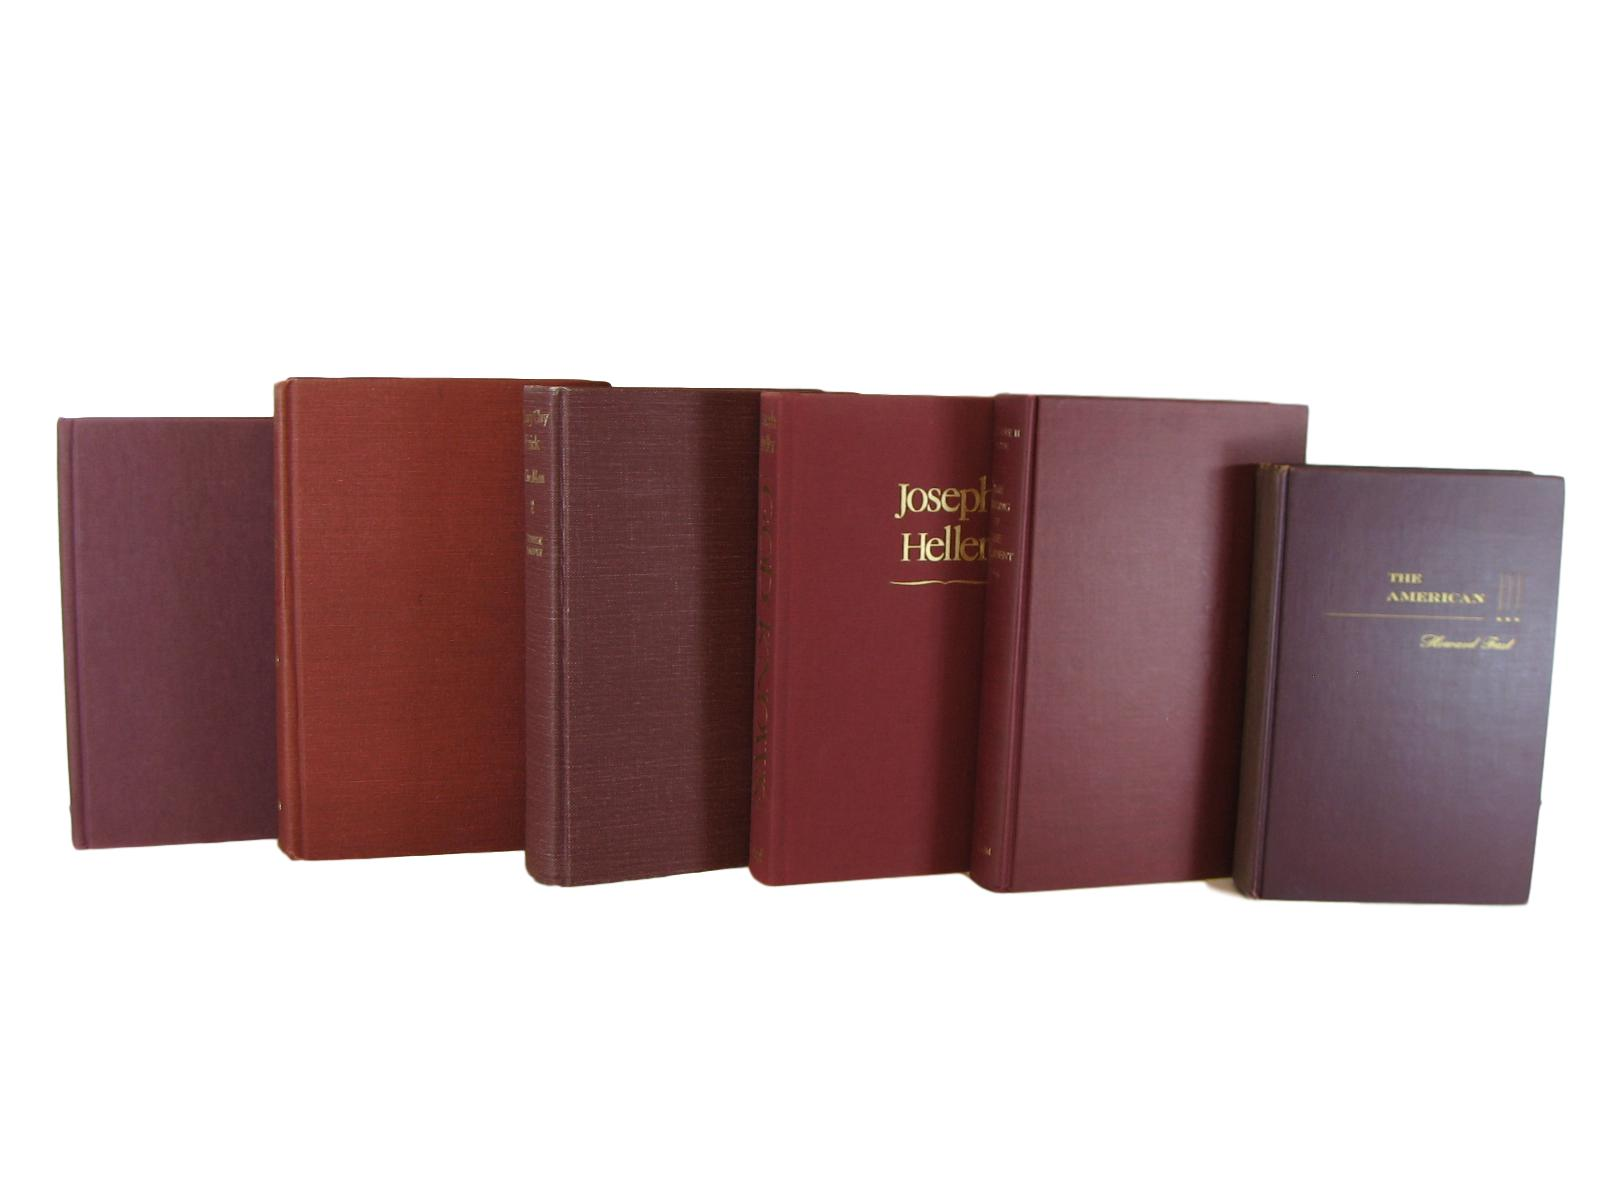 Red Burgundy Decorative Books for Display, S/6 - Decades of Vintage